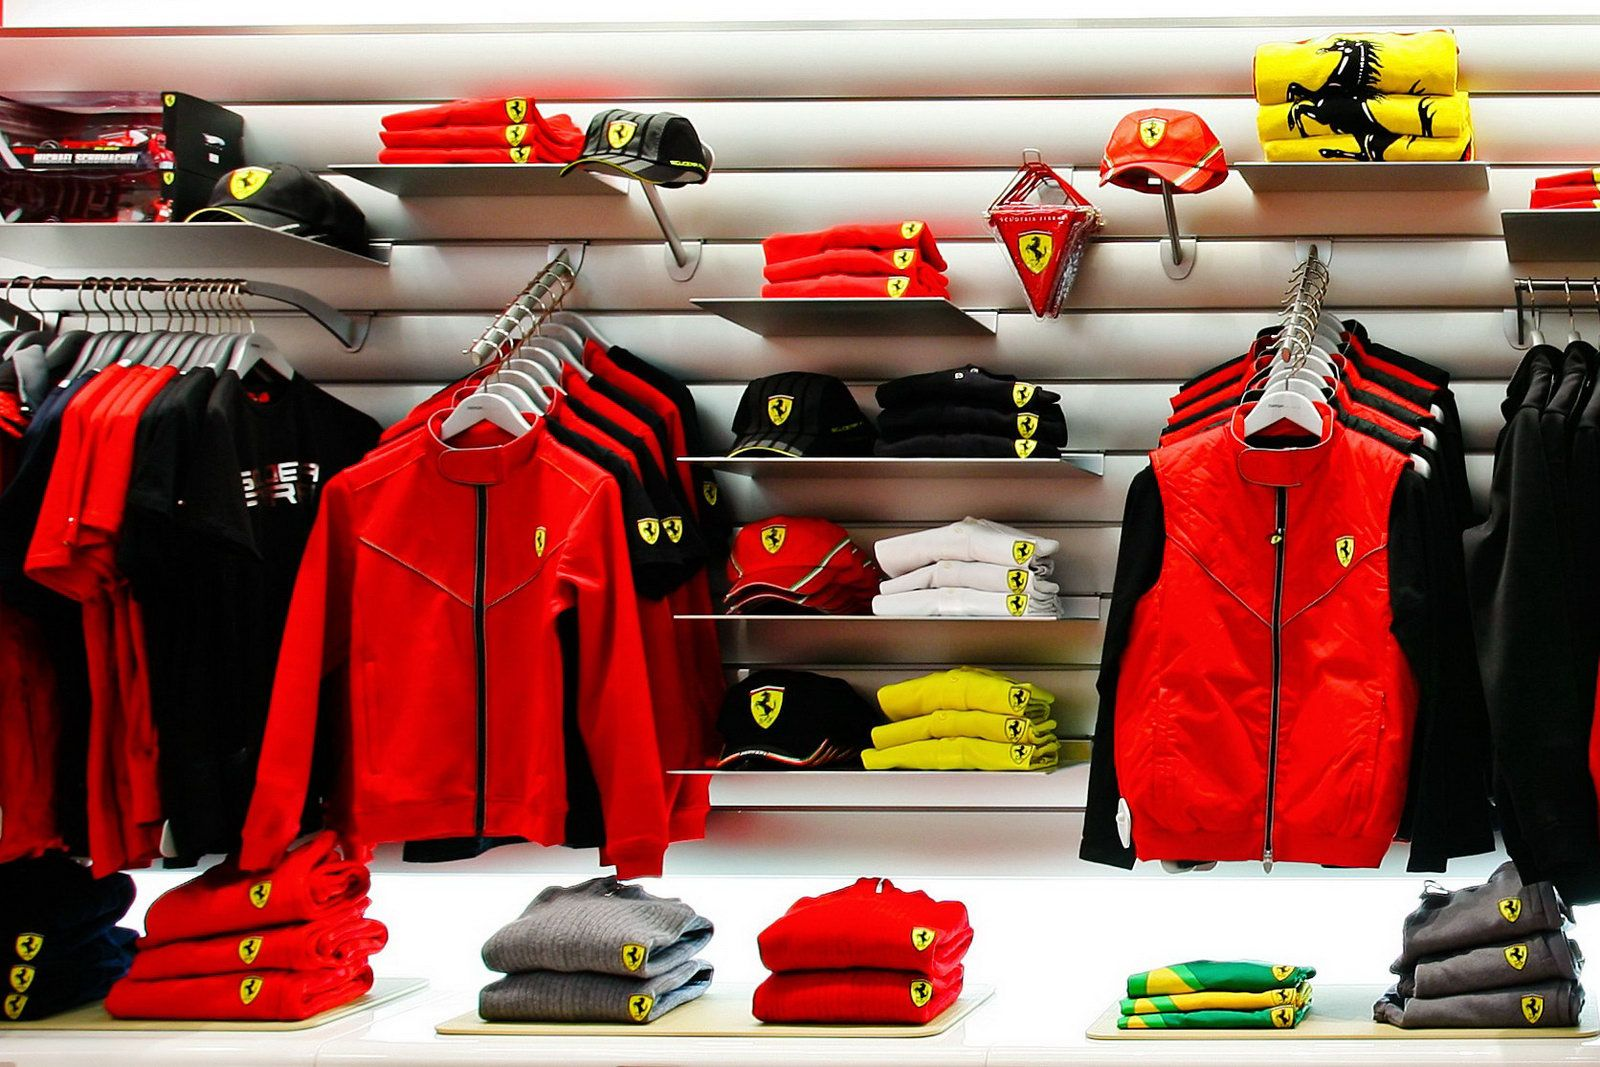 new ferrari store opens in athens greece more to come in spi ra tion pinterest ferrari. Black Bedroom Furniture Sets. Home Design Ideas